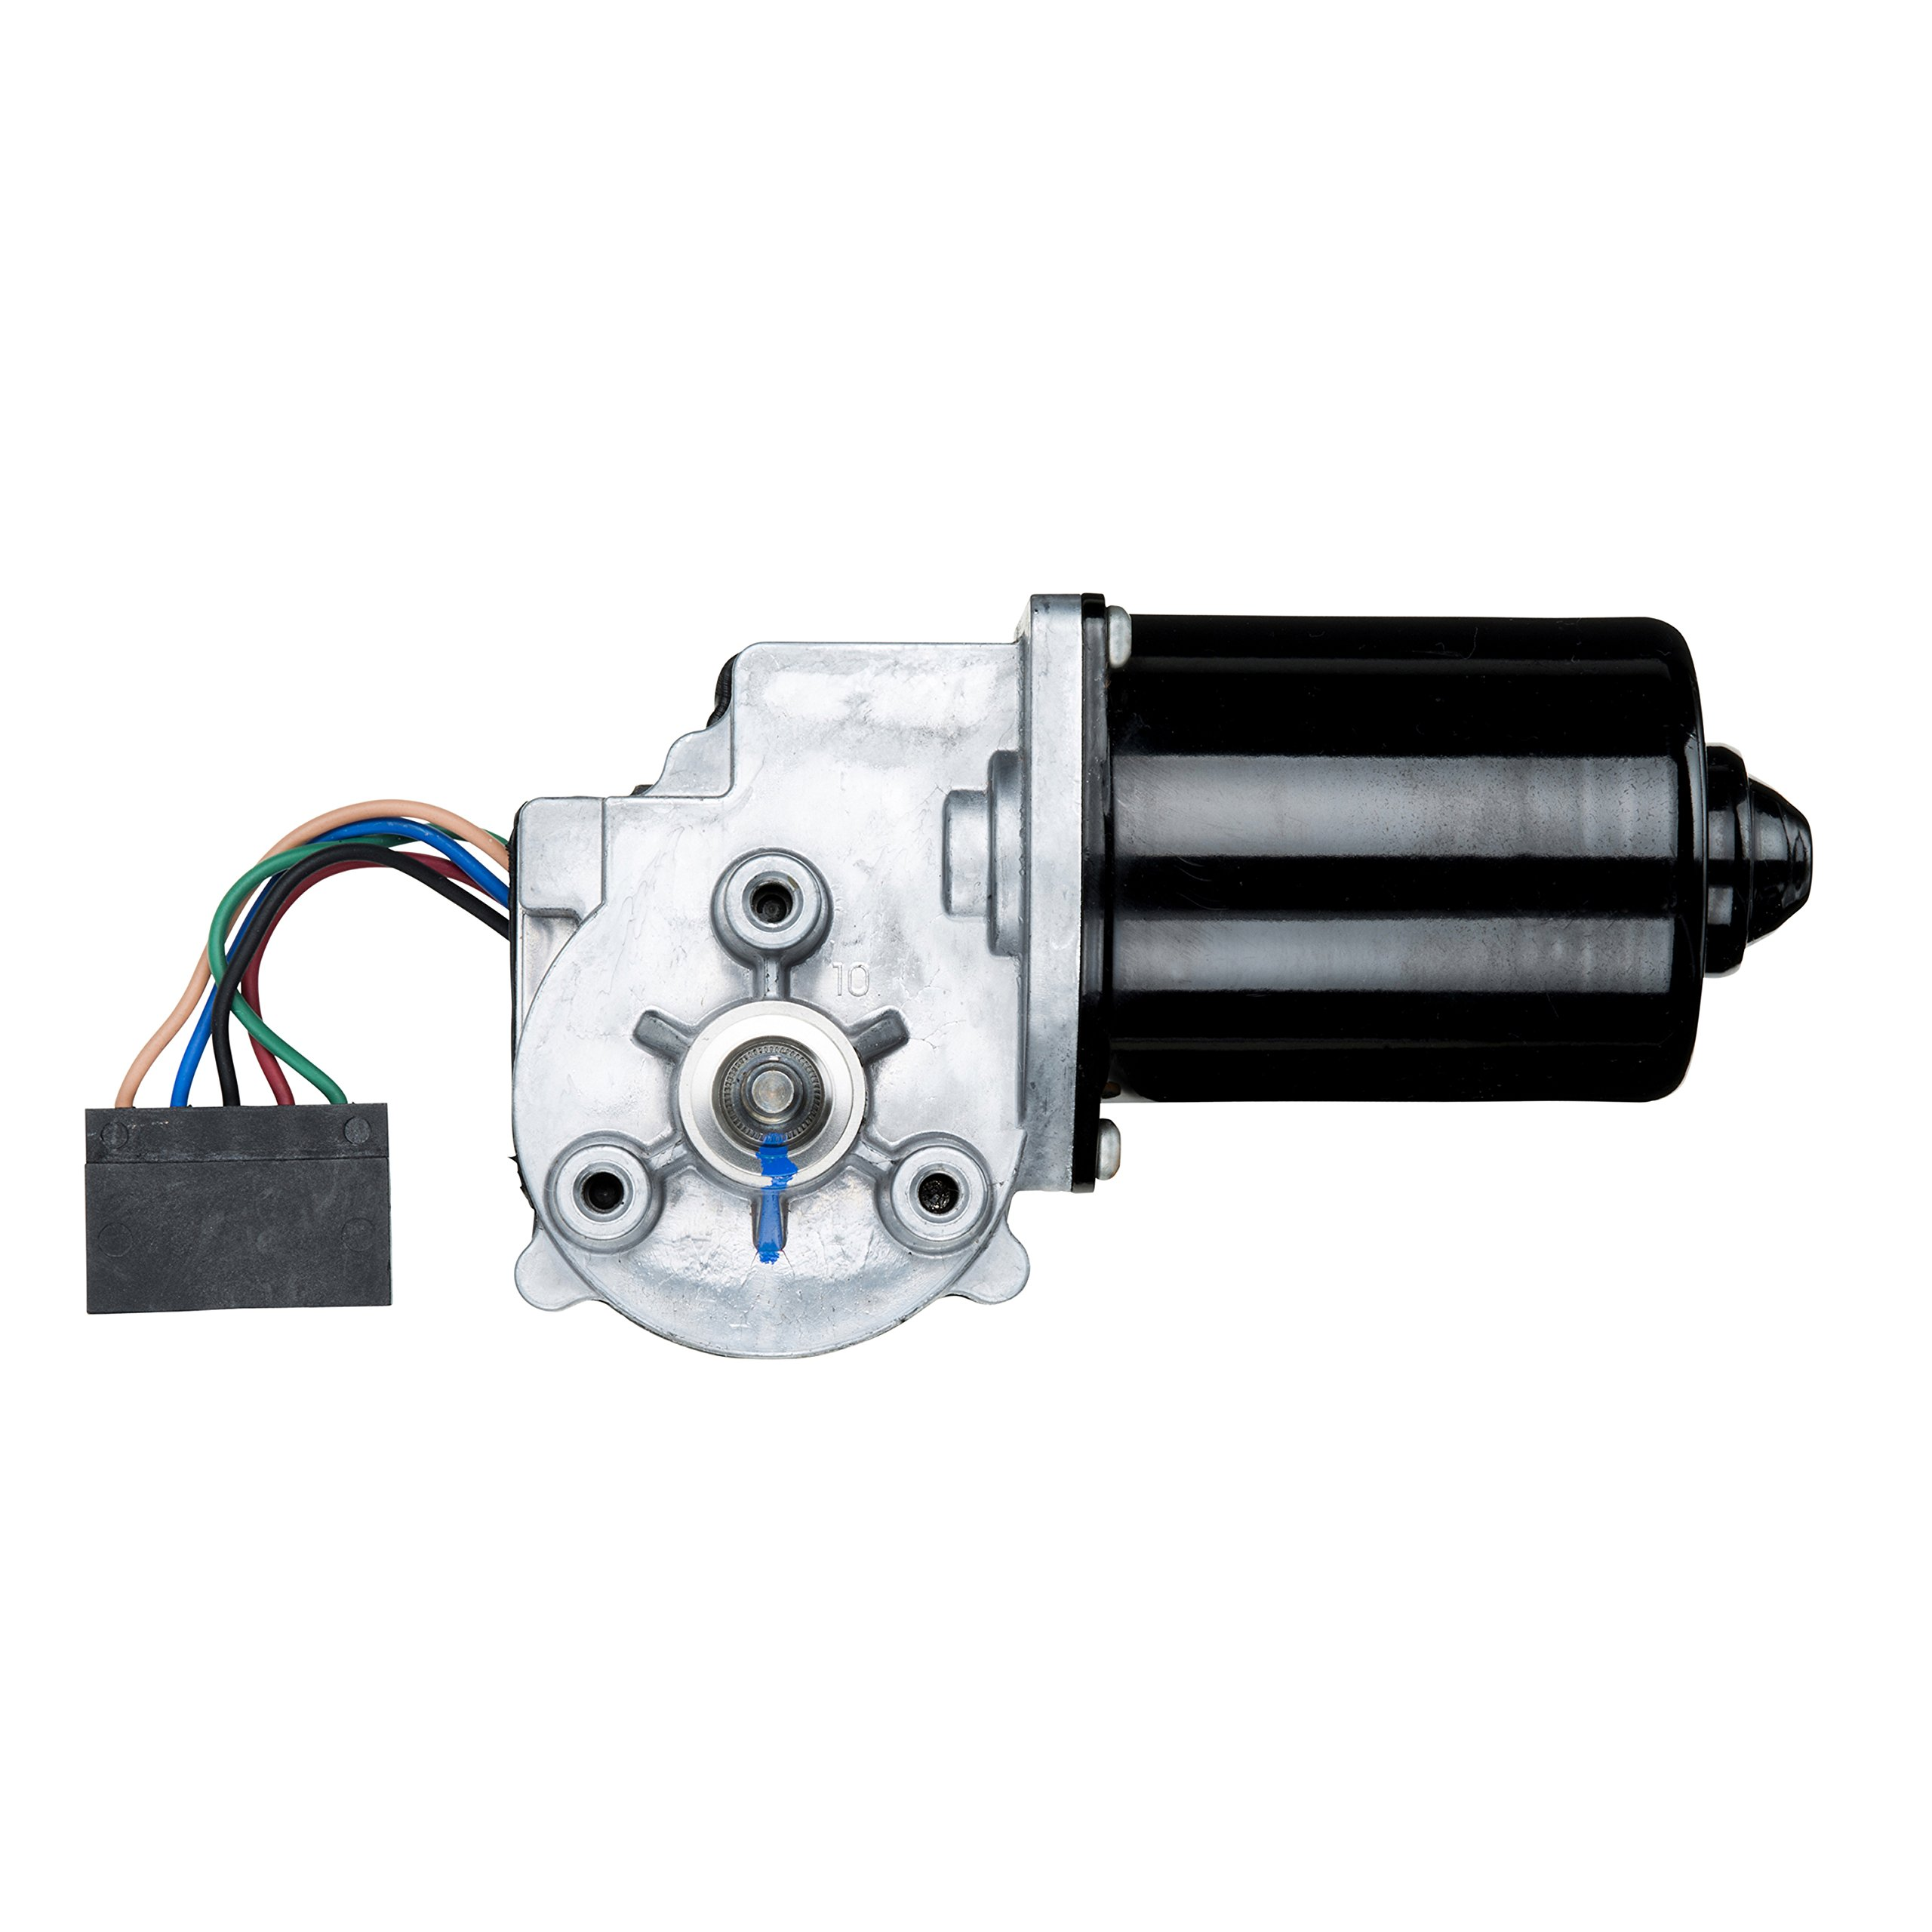 Wexco  Wiper Motor, 105716 24V, 32Nm Dynamic Park J3 Wiper Motor with JE/UT Connector by AutoTex